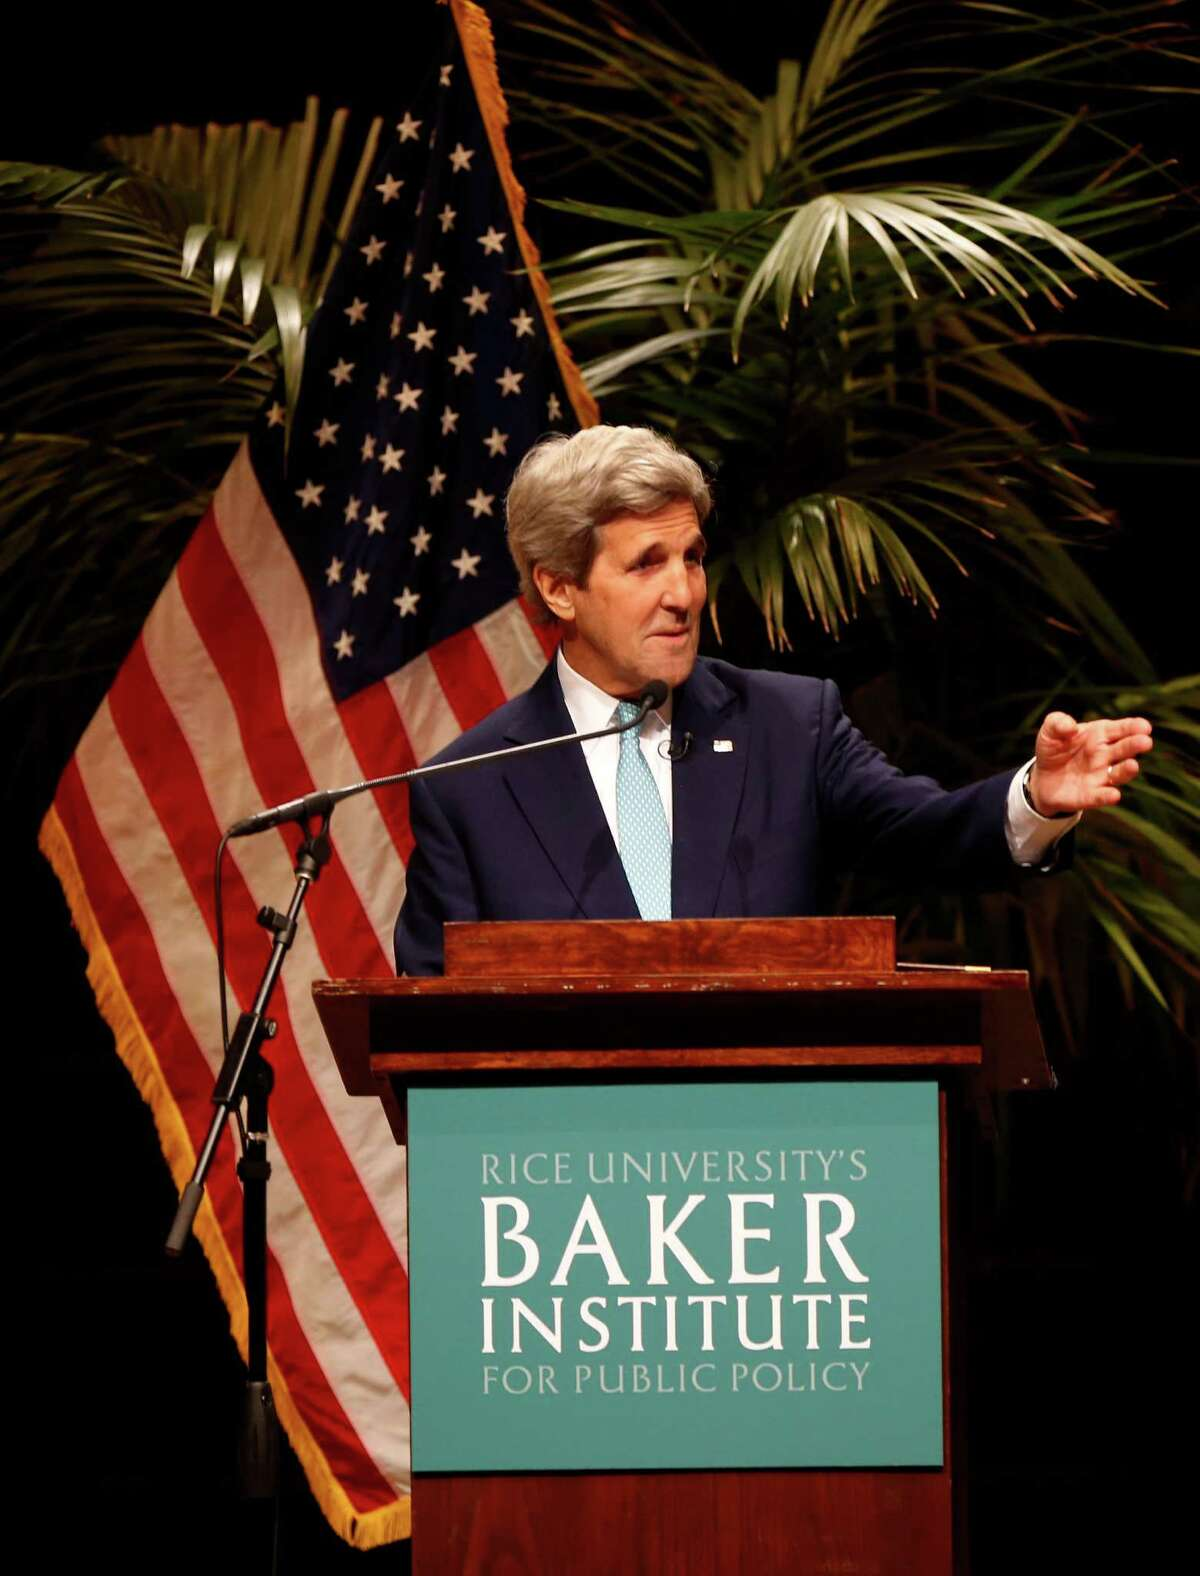 Kerry spoke to about 700 people Tuesday about how dialogue with religious leaders, and followers, helps American diplomacy, from Nigeria to Europe.